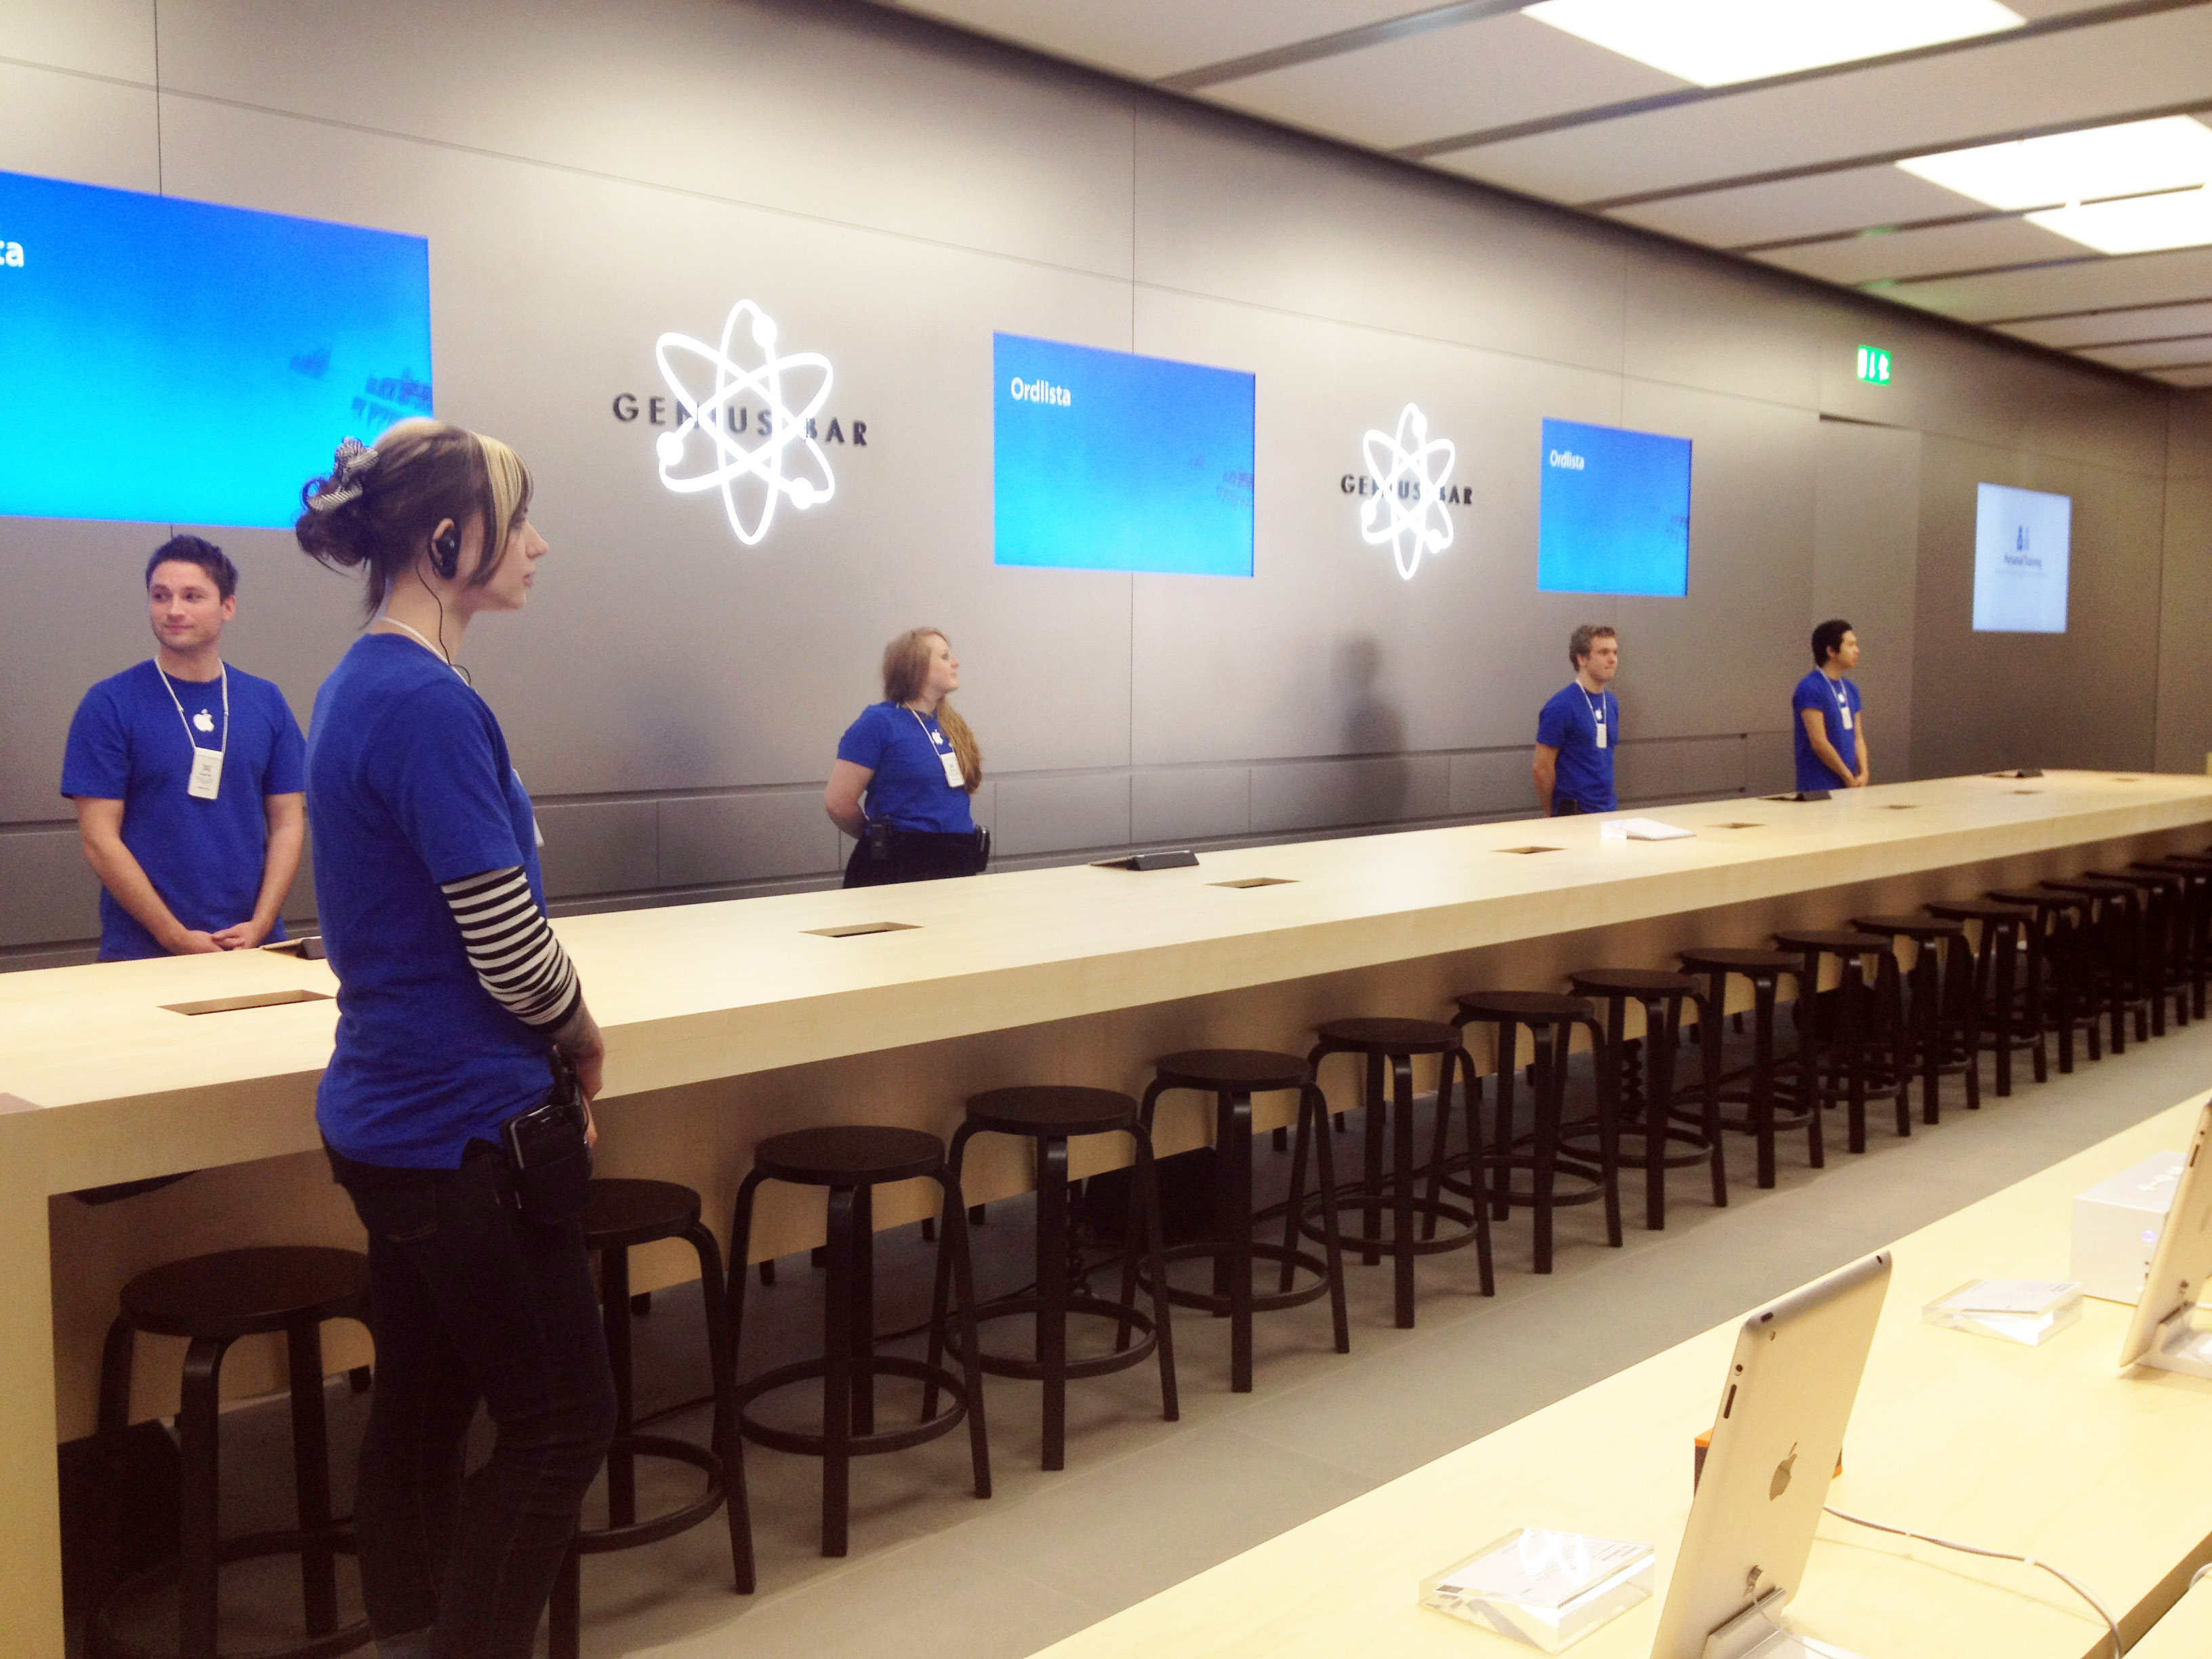 Elegant Expert Help At The Genius Bar. At The Desk Youu0027ll Get Help From Apple  Geniuses. Awesome Ideas